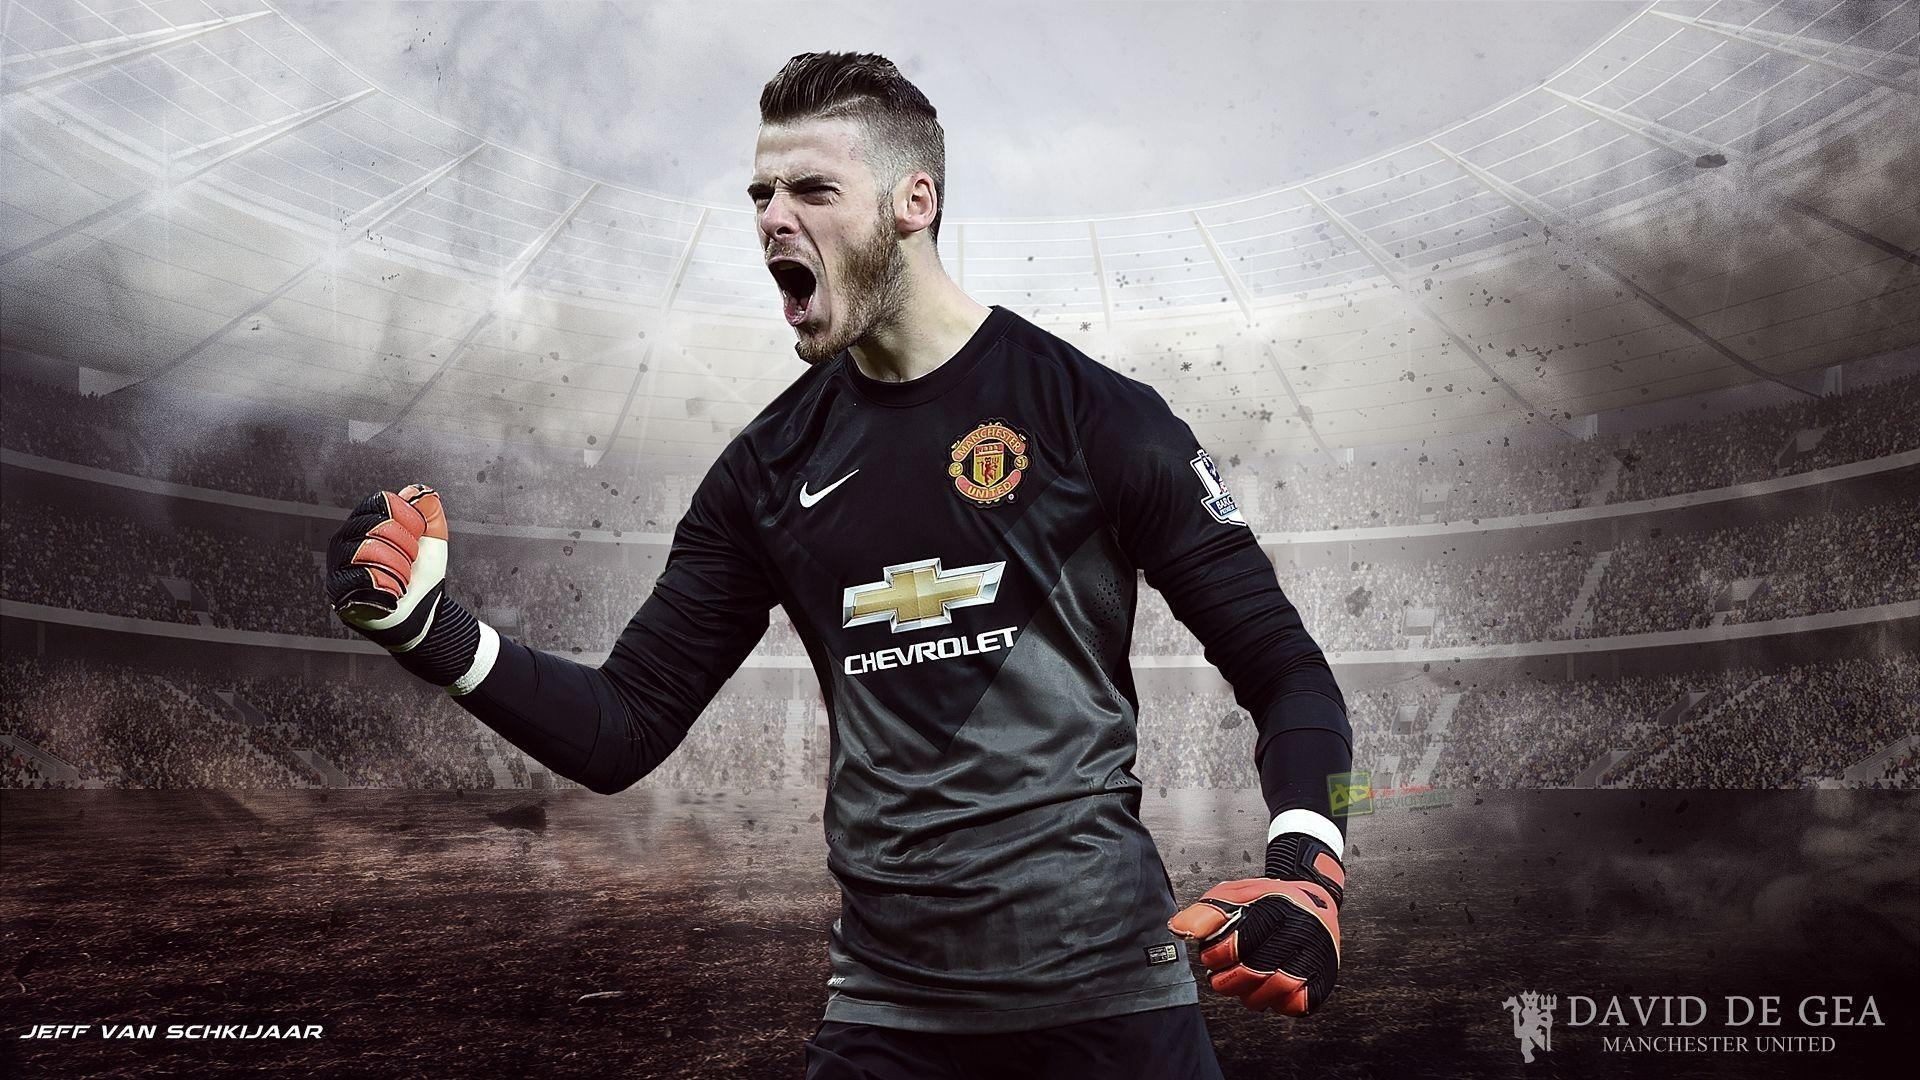 david de gea wallpapers - wallpaper cave